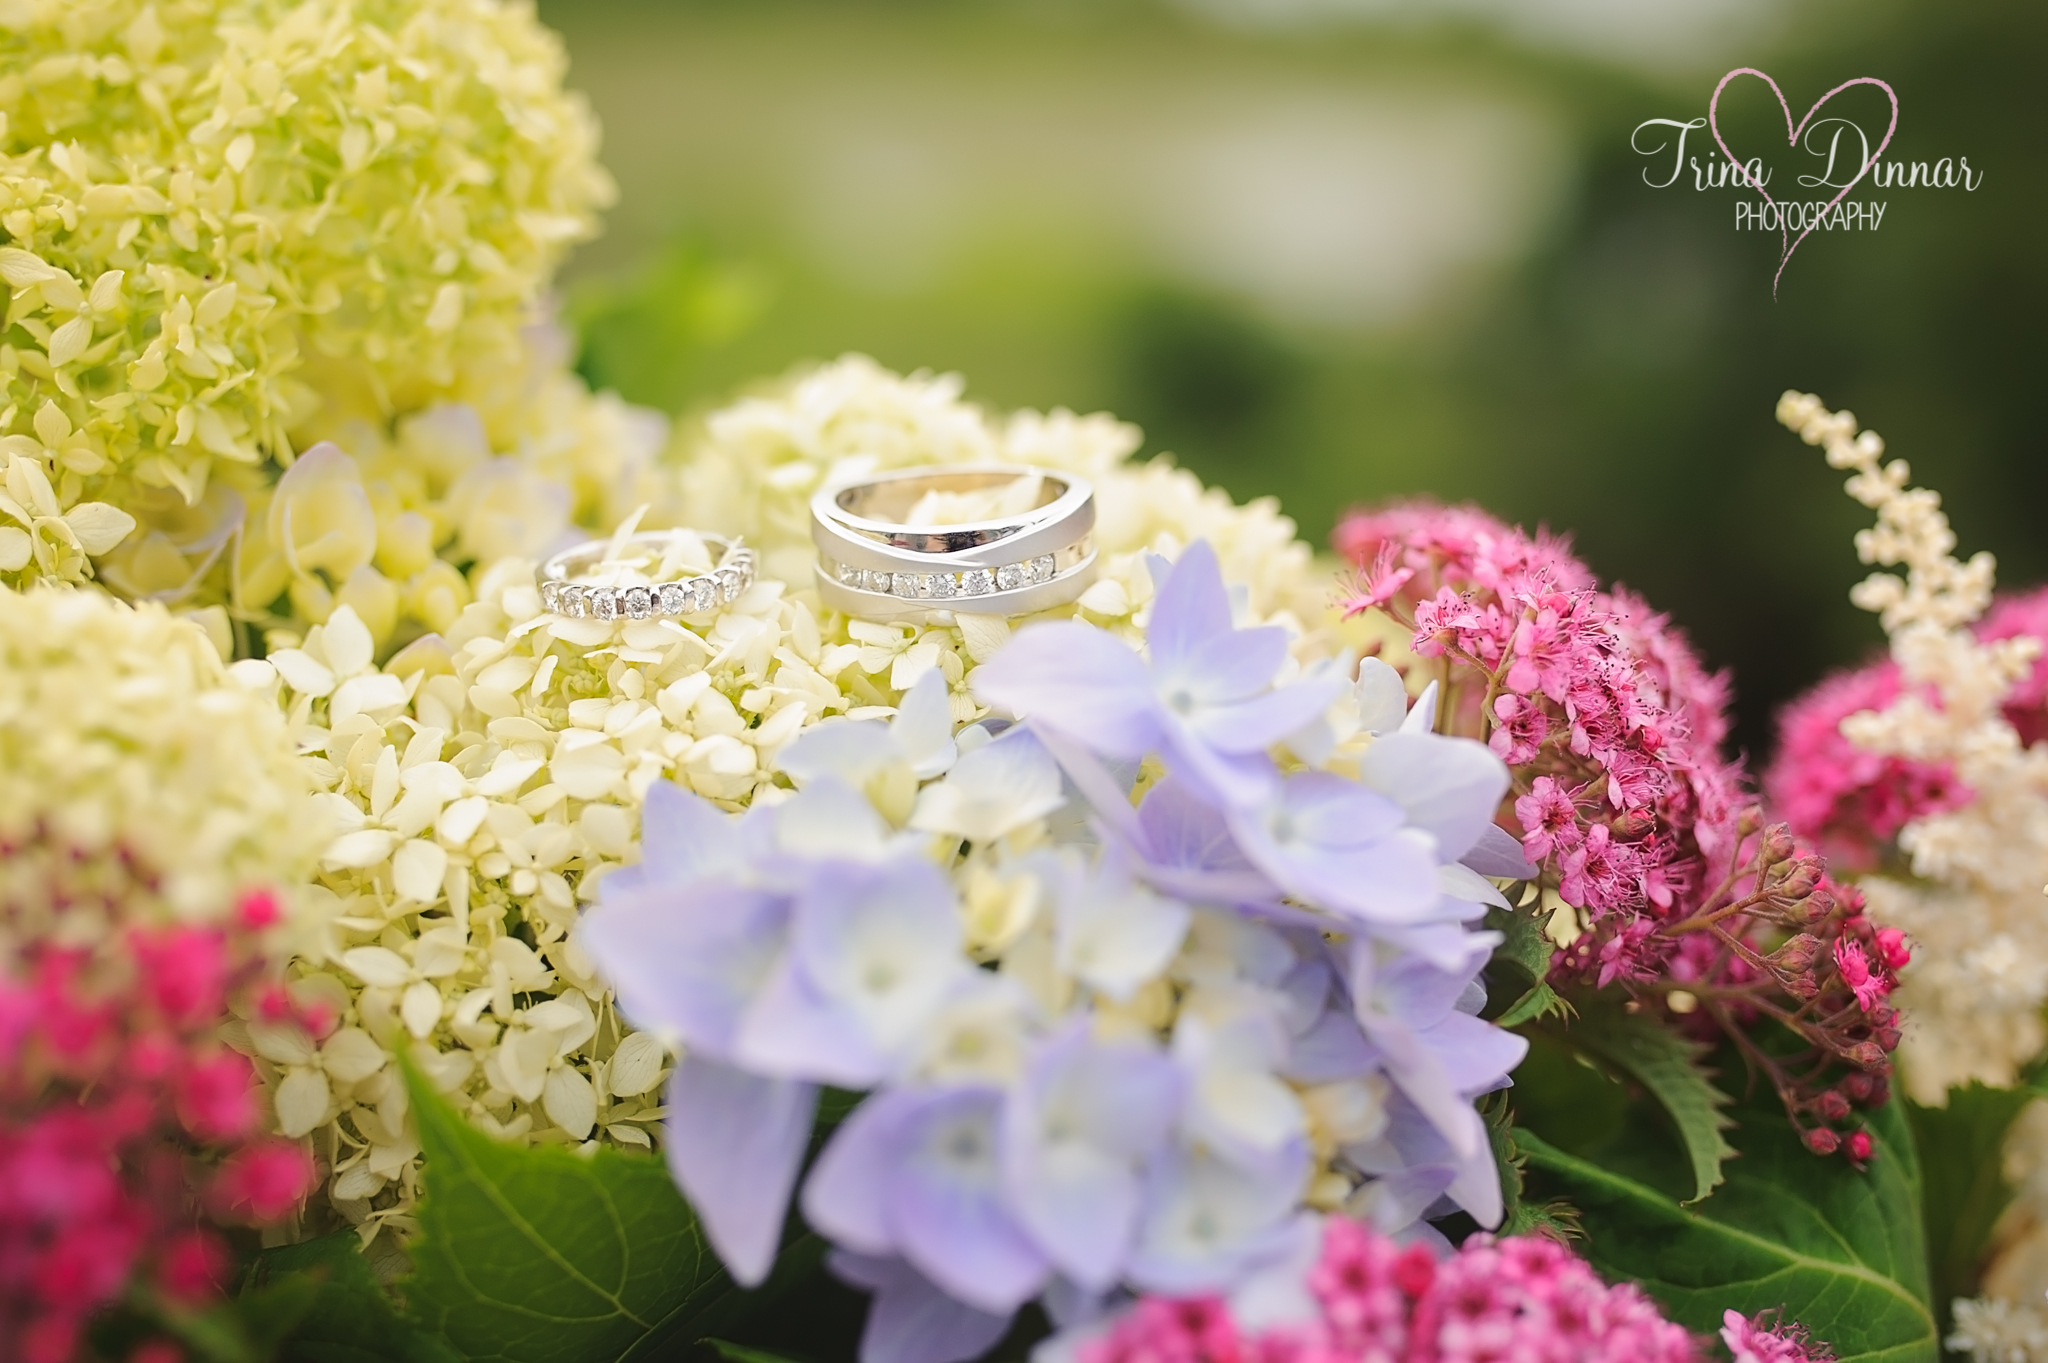 Weddings Rings and flowers from Sage Floral Studio in MA